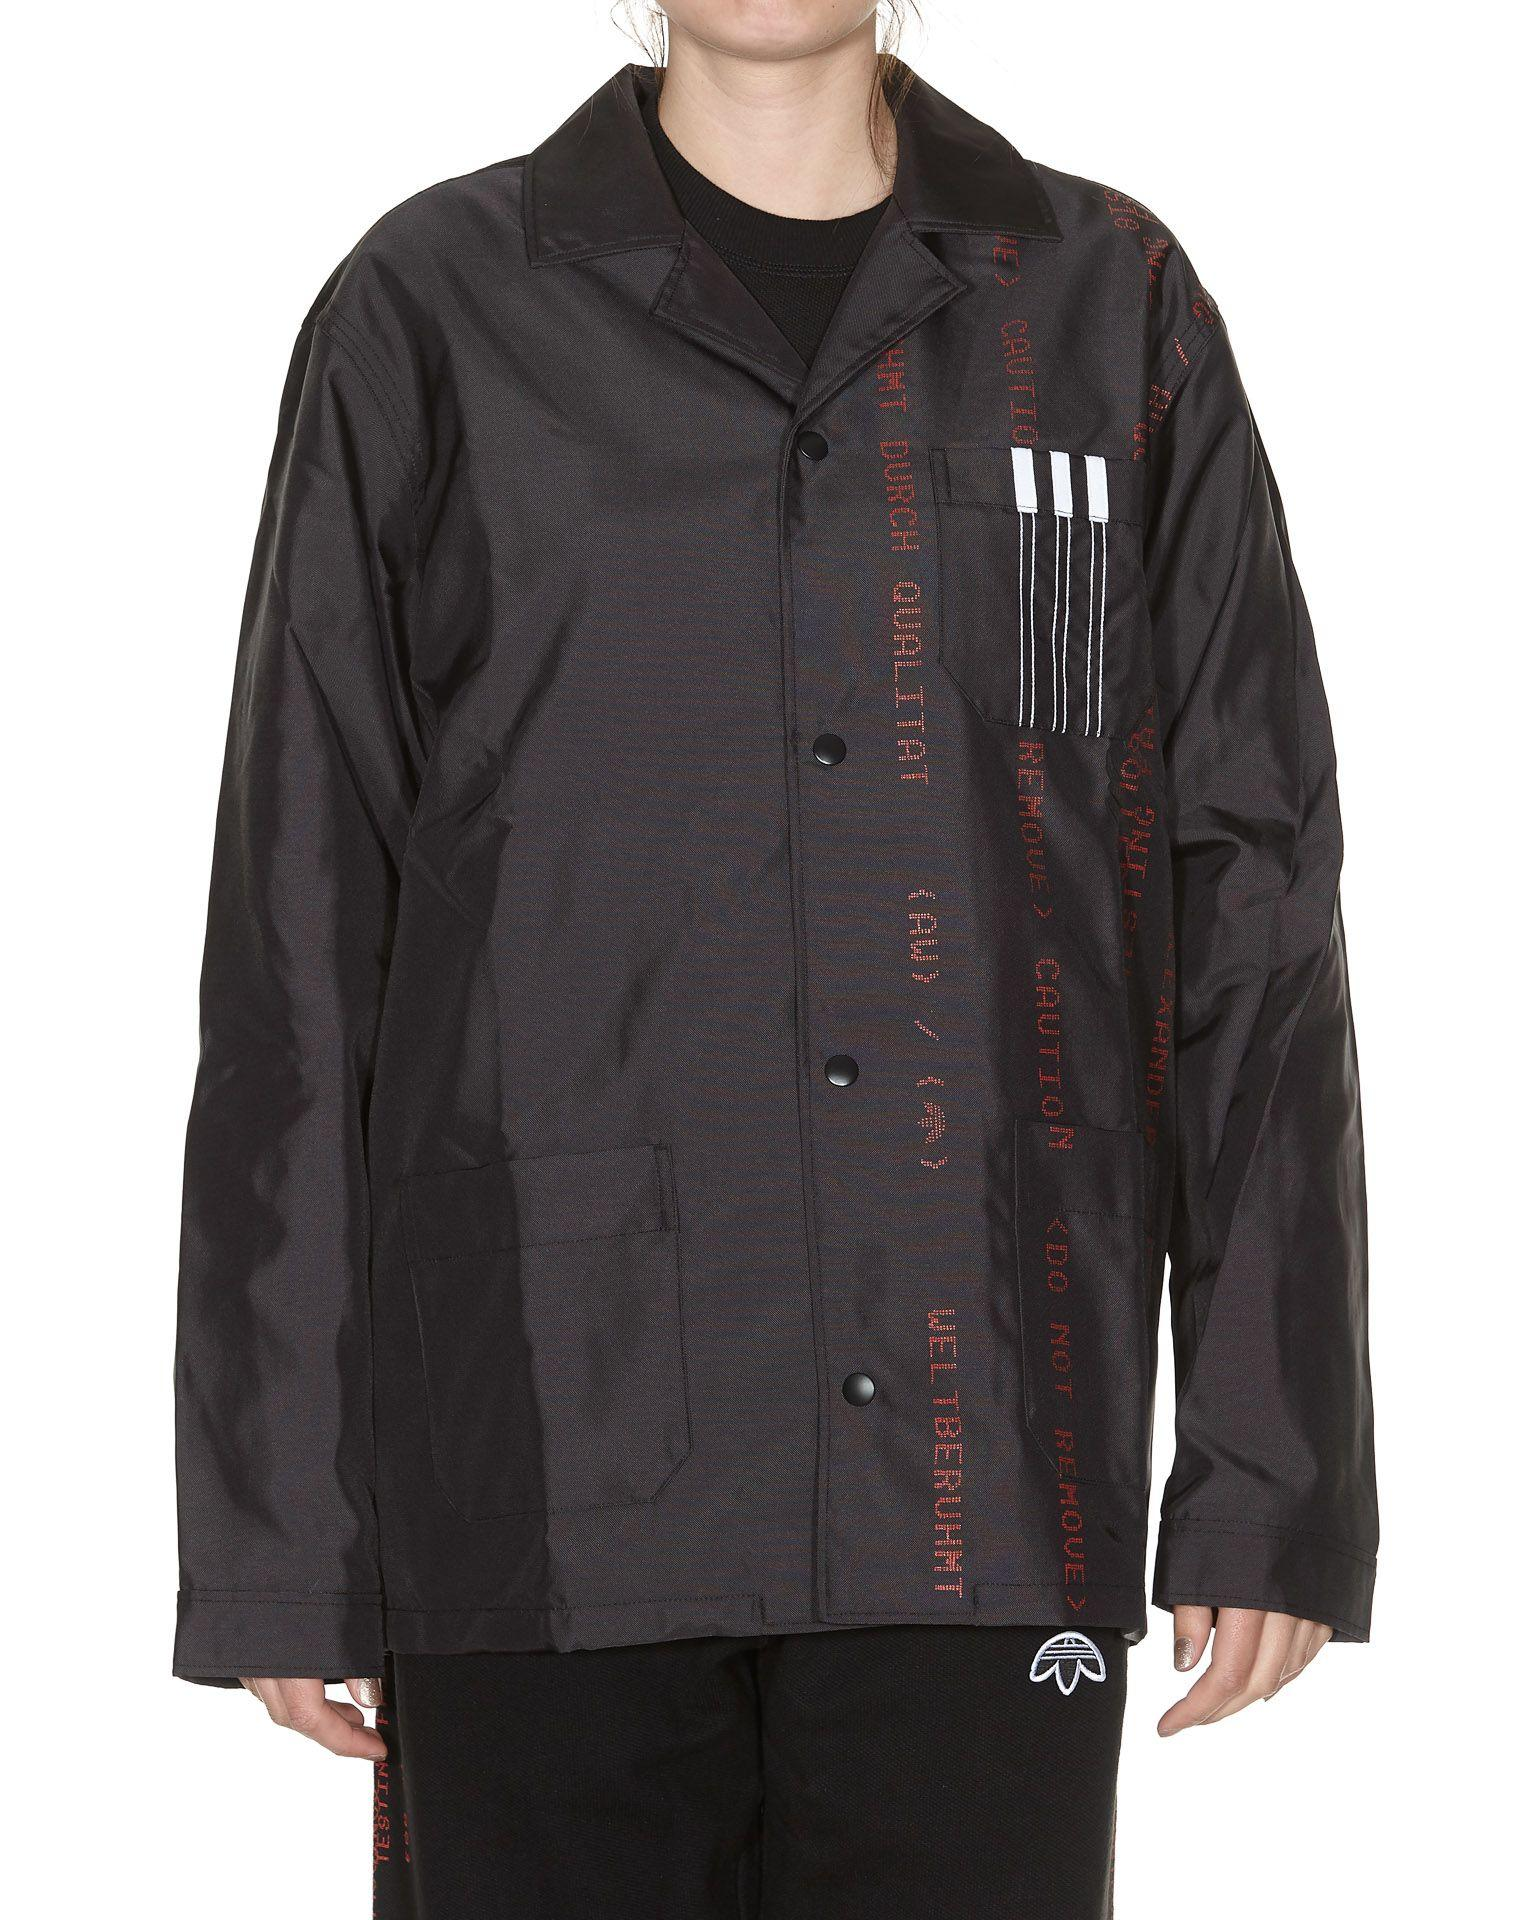 66bcbd7dc2 Adidas Originals By Alexander Wang Coach Jacket In Black